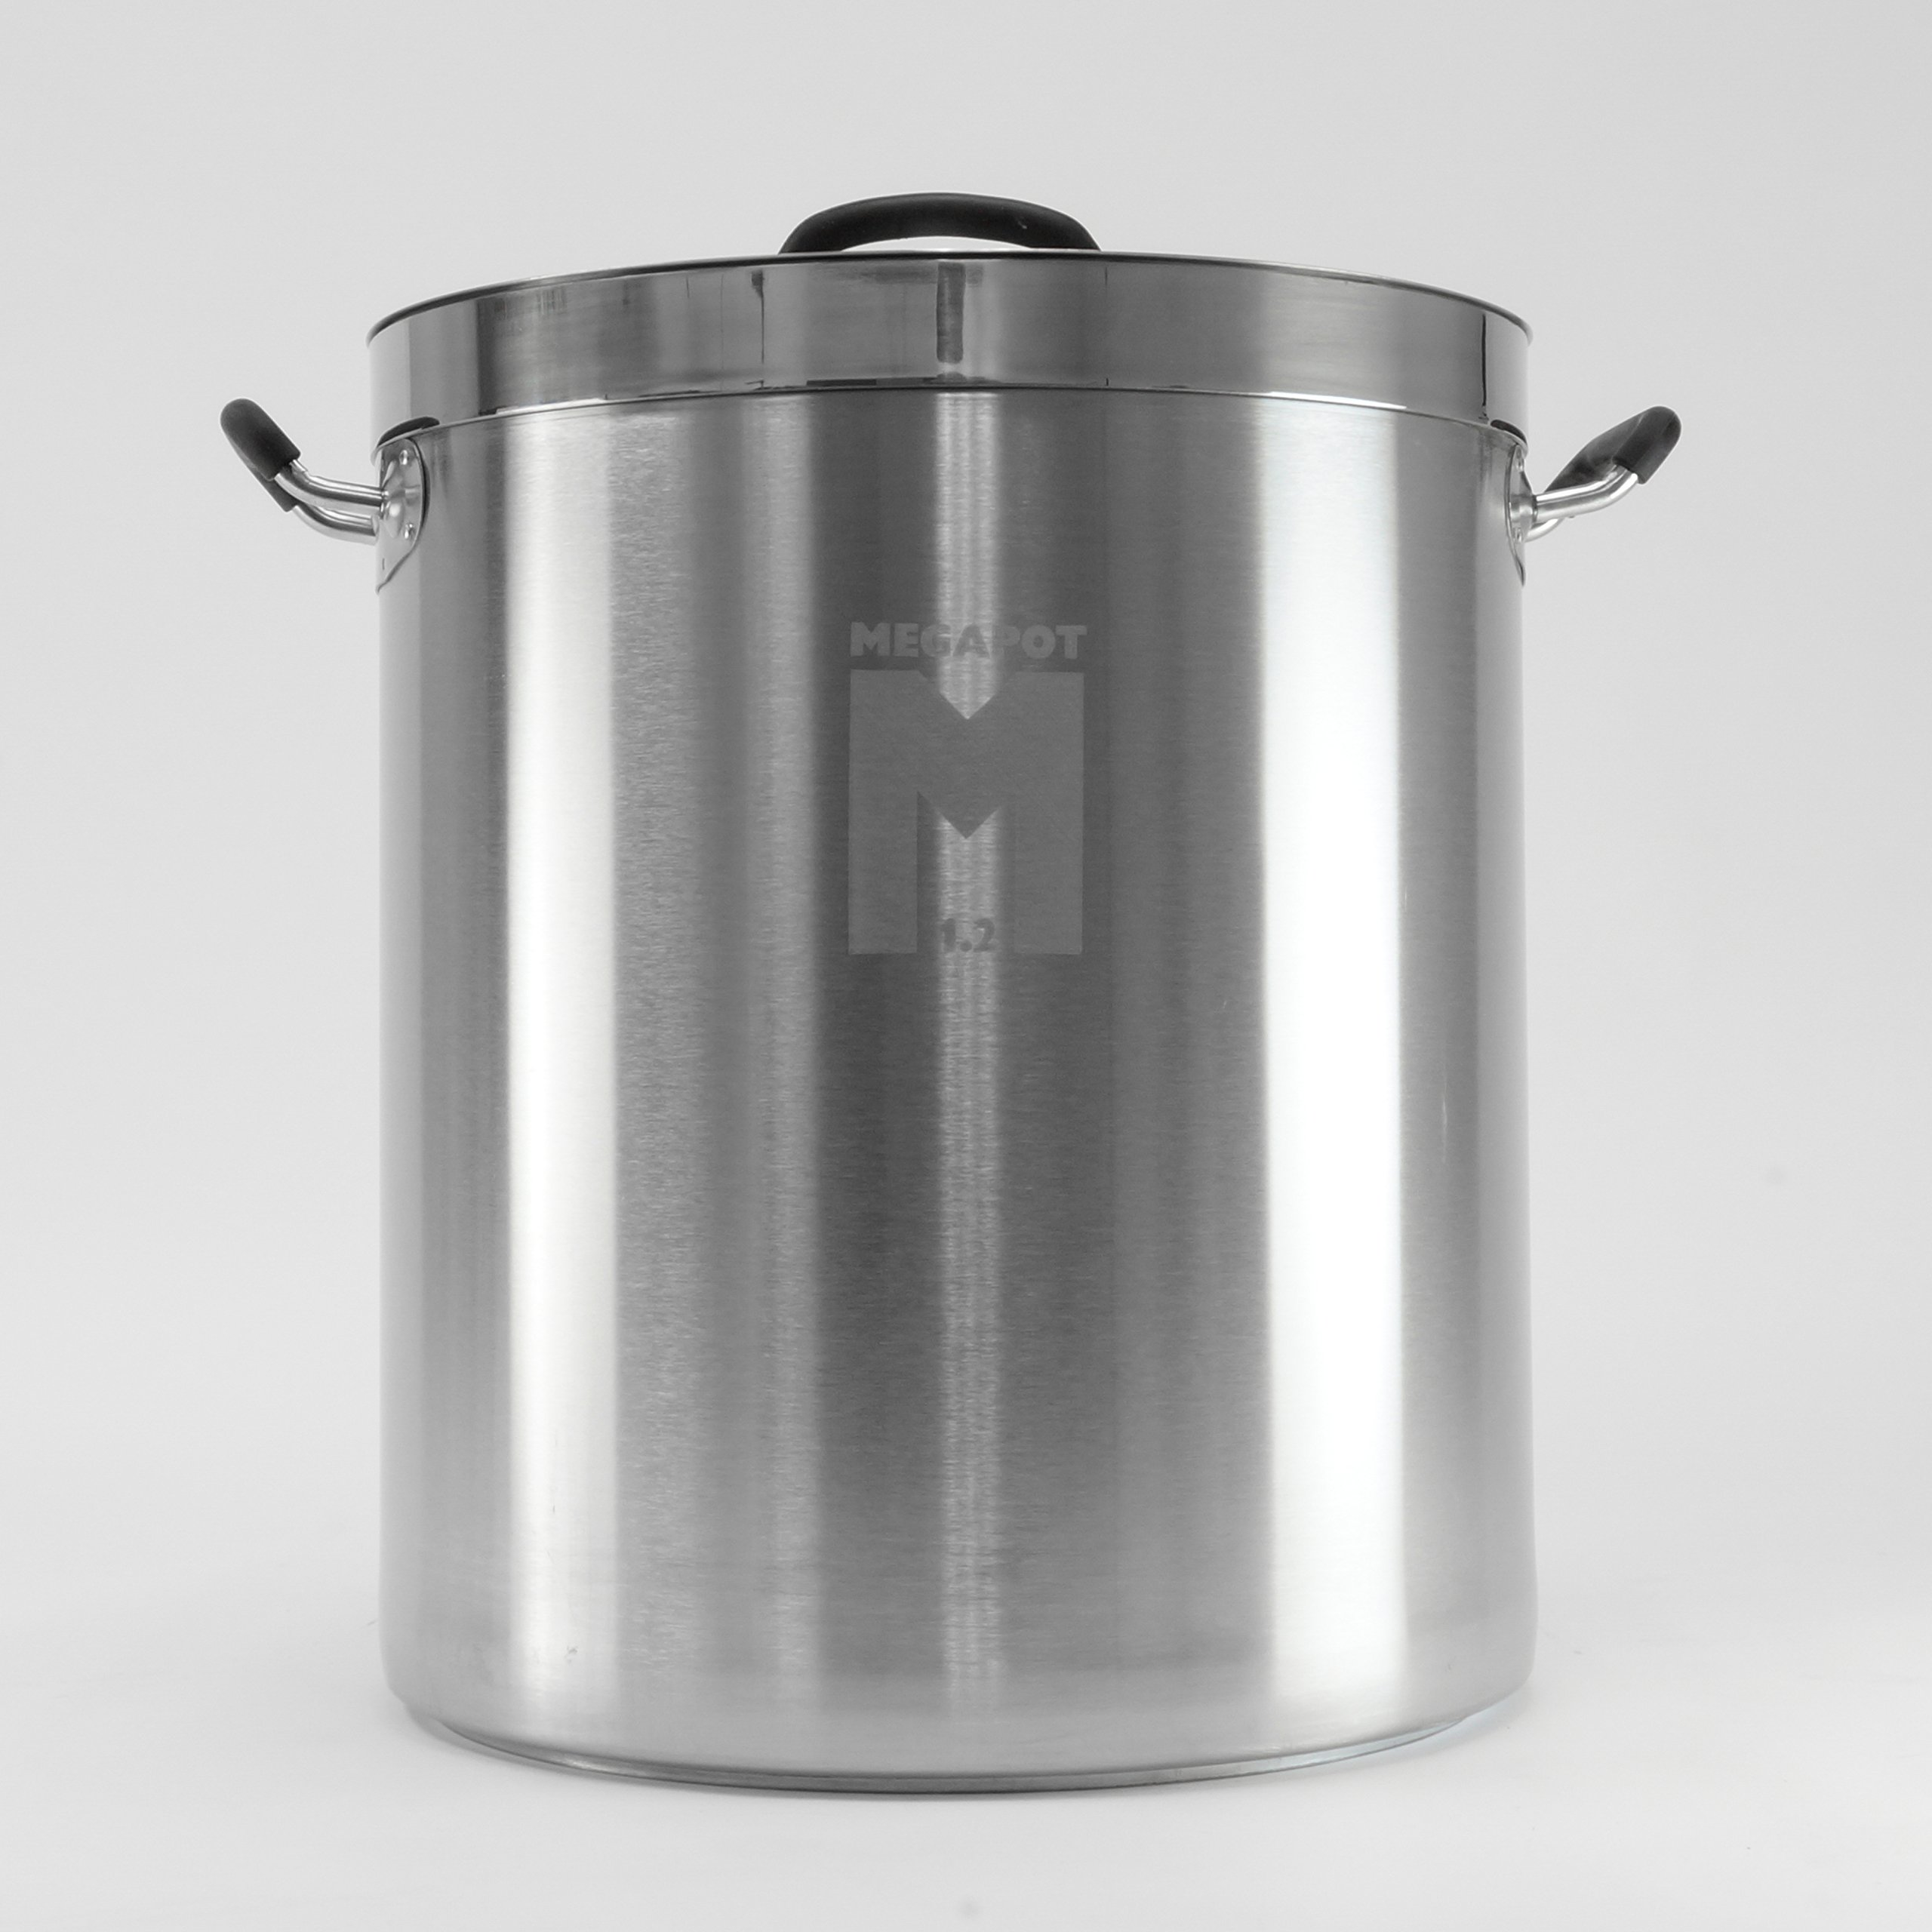 Brew Kettle: Stainless Steel Stock Pot for Homebrew (Plain Kettle, 15 Gallon)